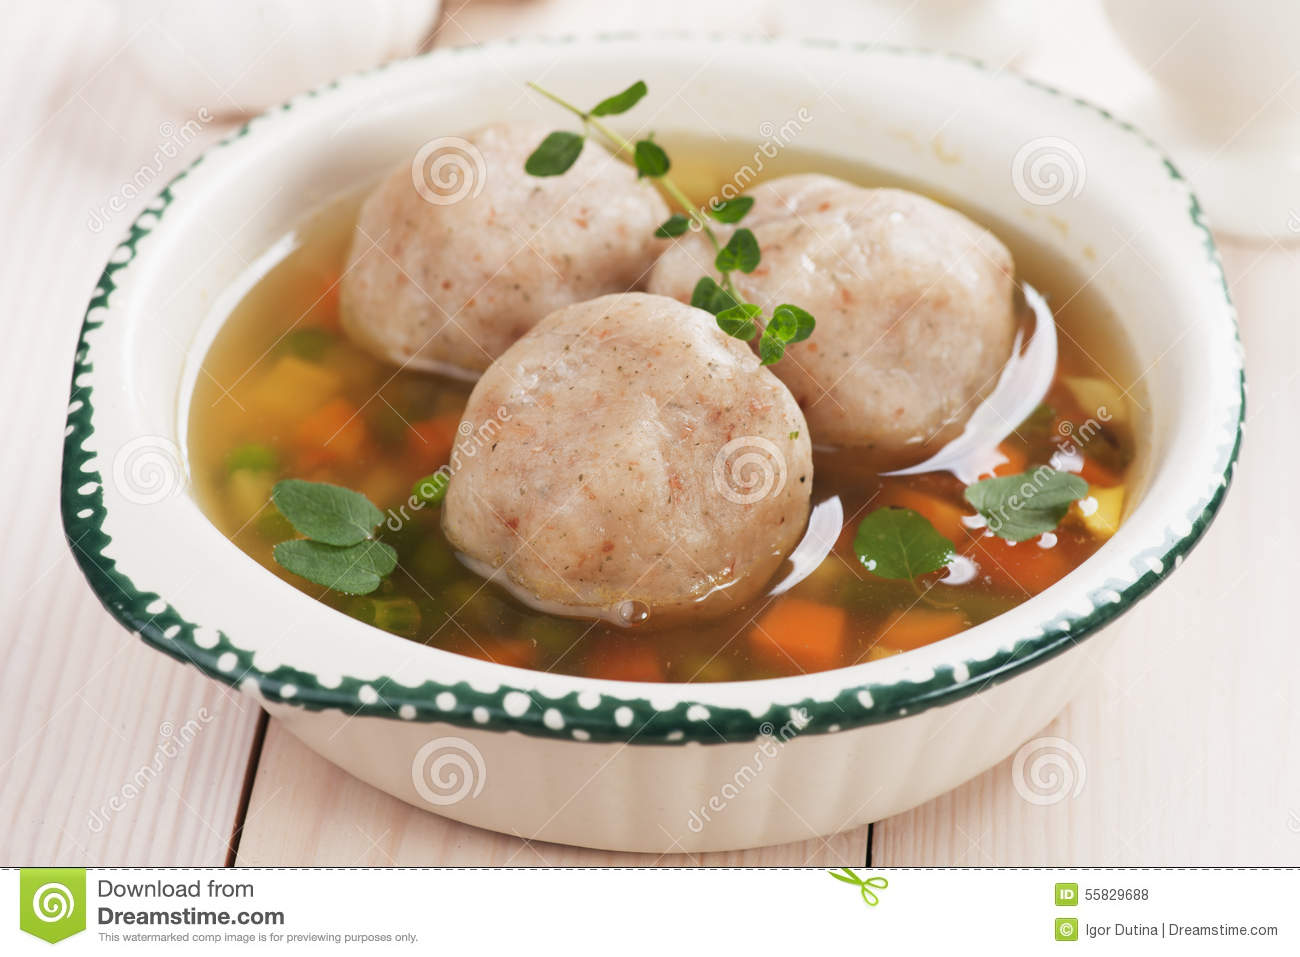 Vegetable Soup With Bread Dumplings Stock Photo.